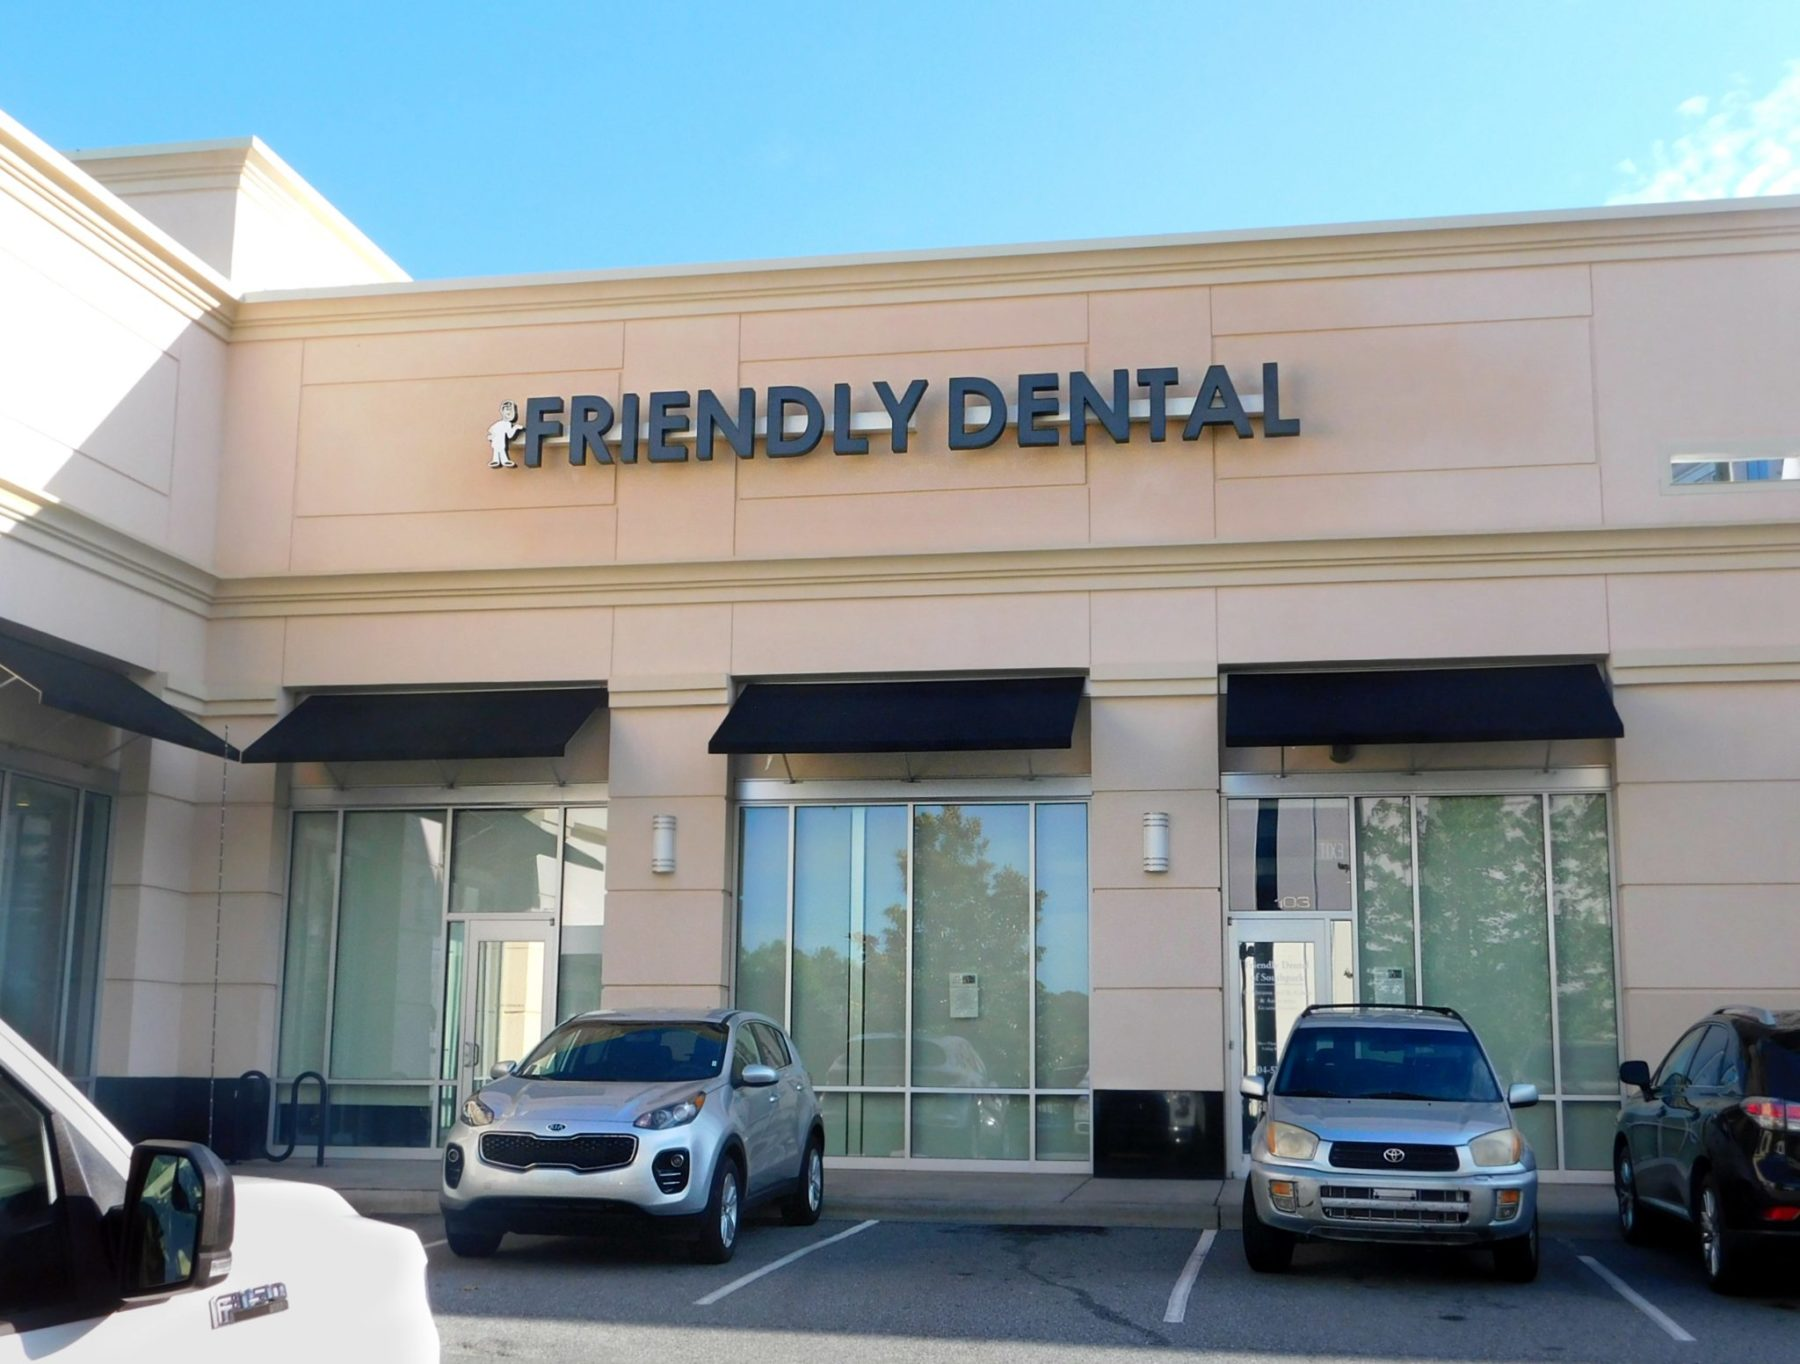 https://friendlydentalgroup.com/wp-content/uploads/2016/08/friendlydentalsouthaprk.jpg